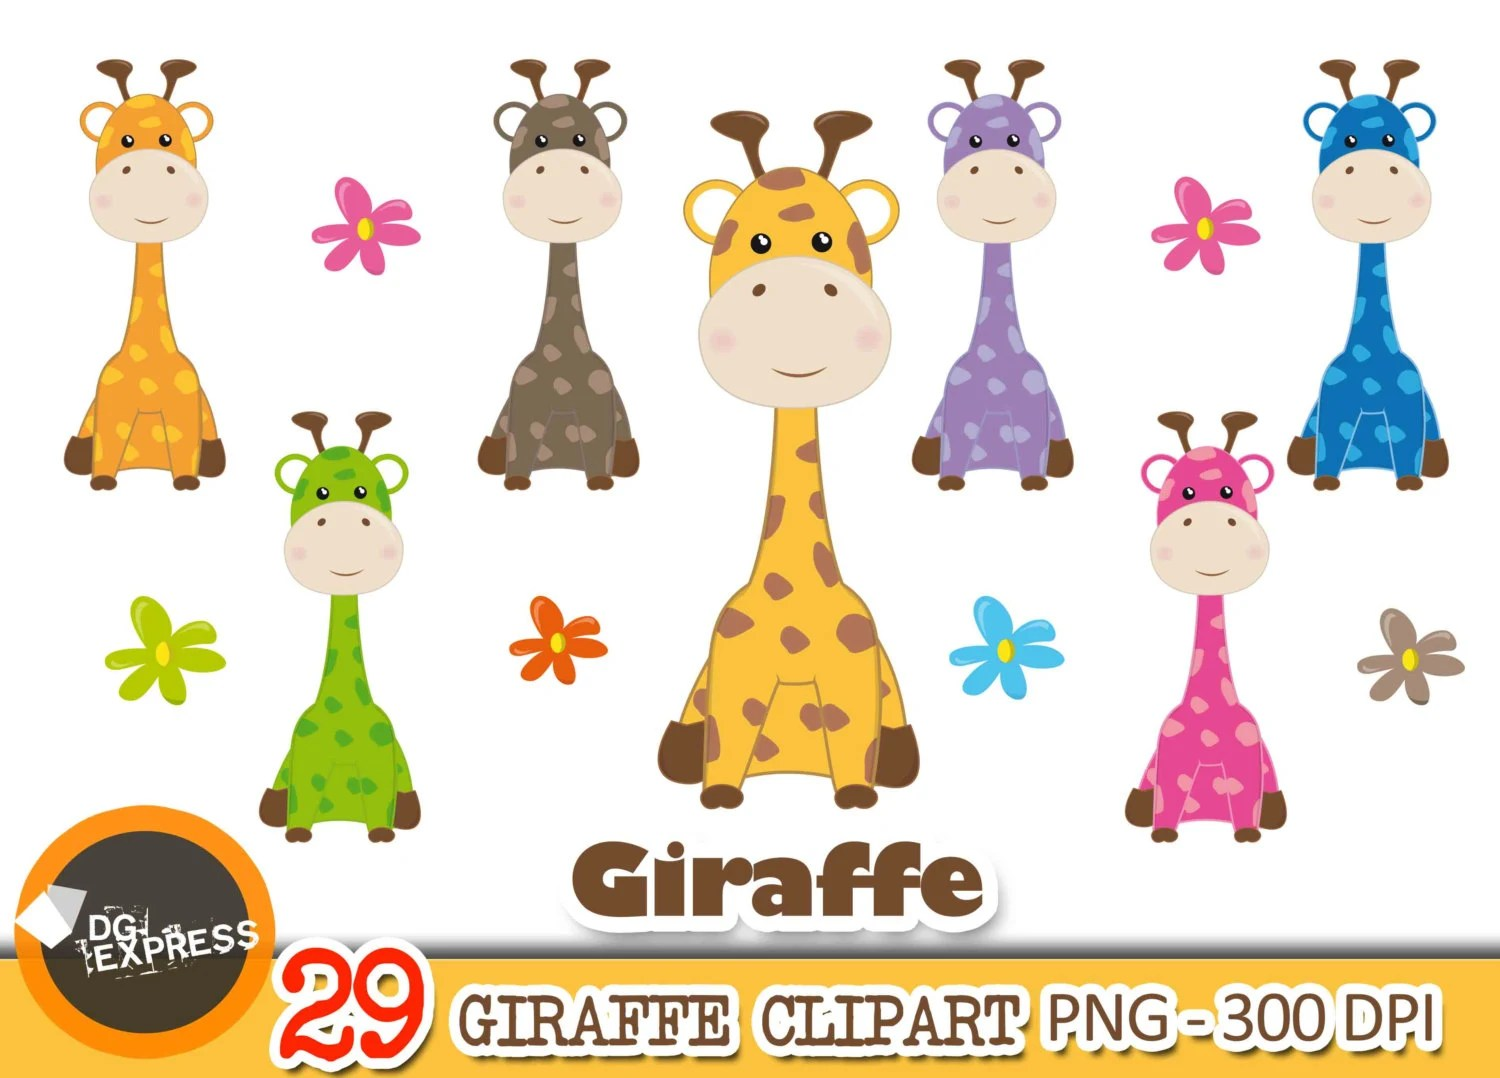 hight resolution of sale giraffe clipart giraffe clipart giraffe clipart giraffe digital giraffe clipart personal commercial use